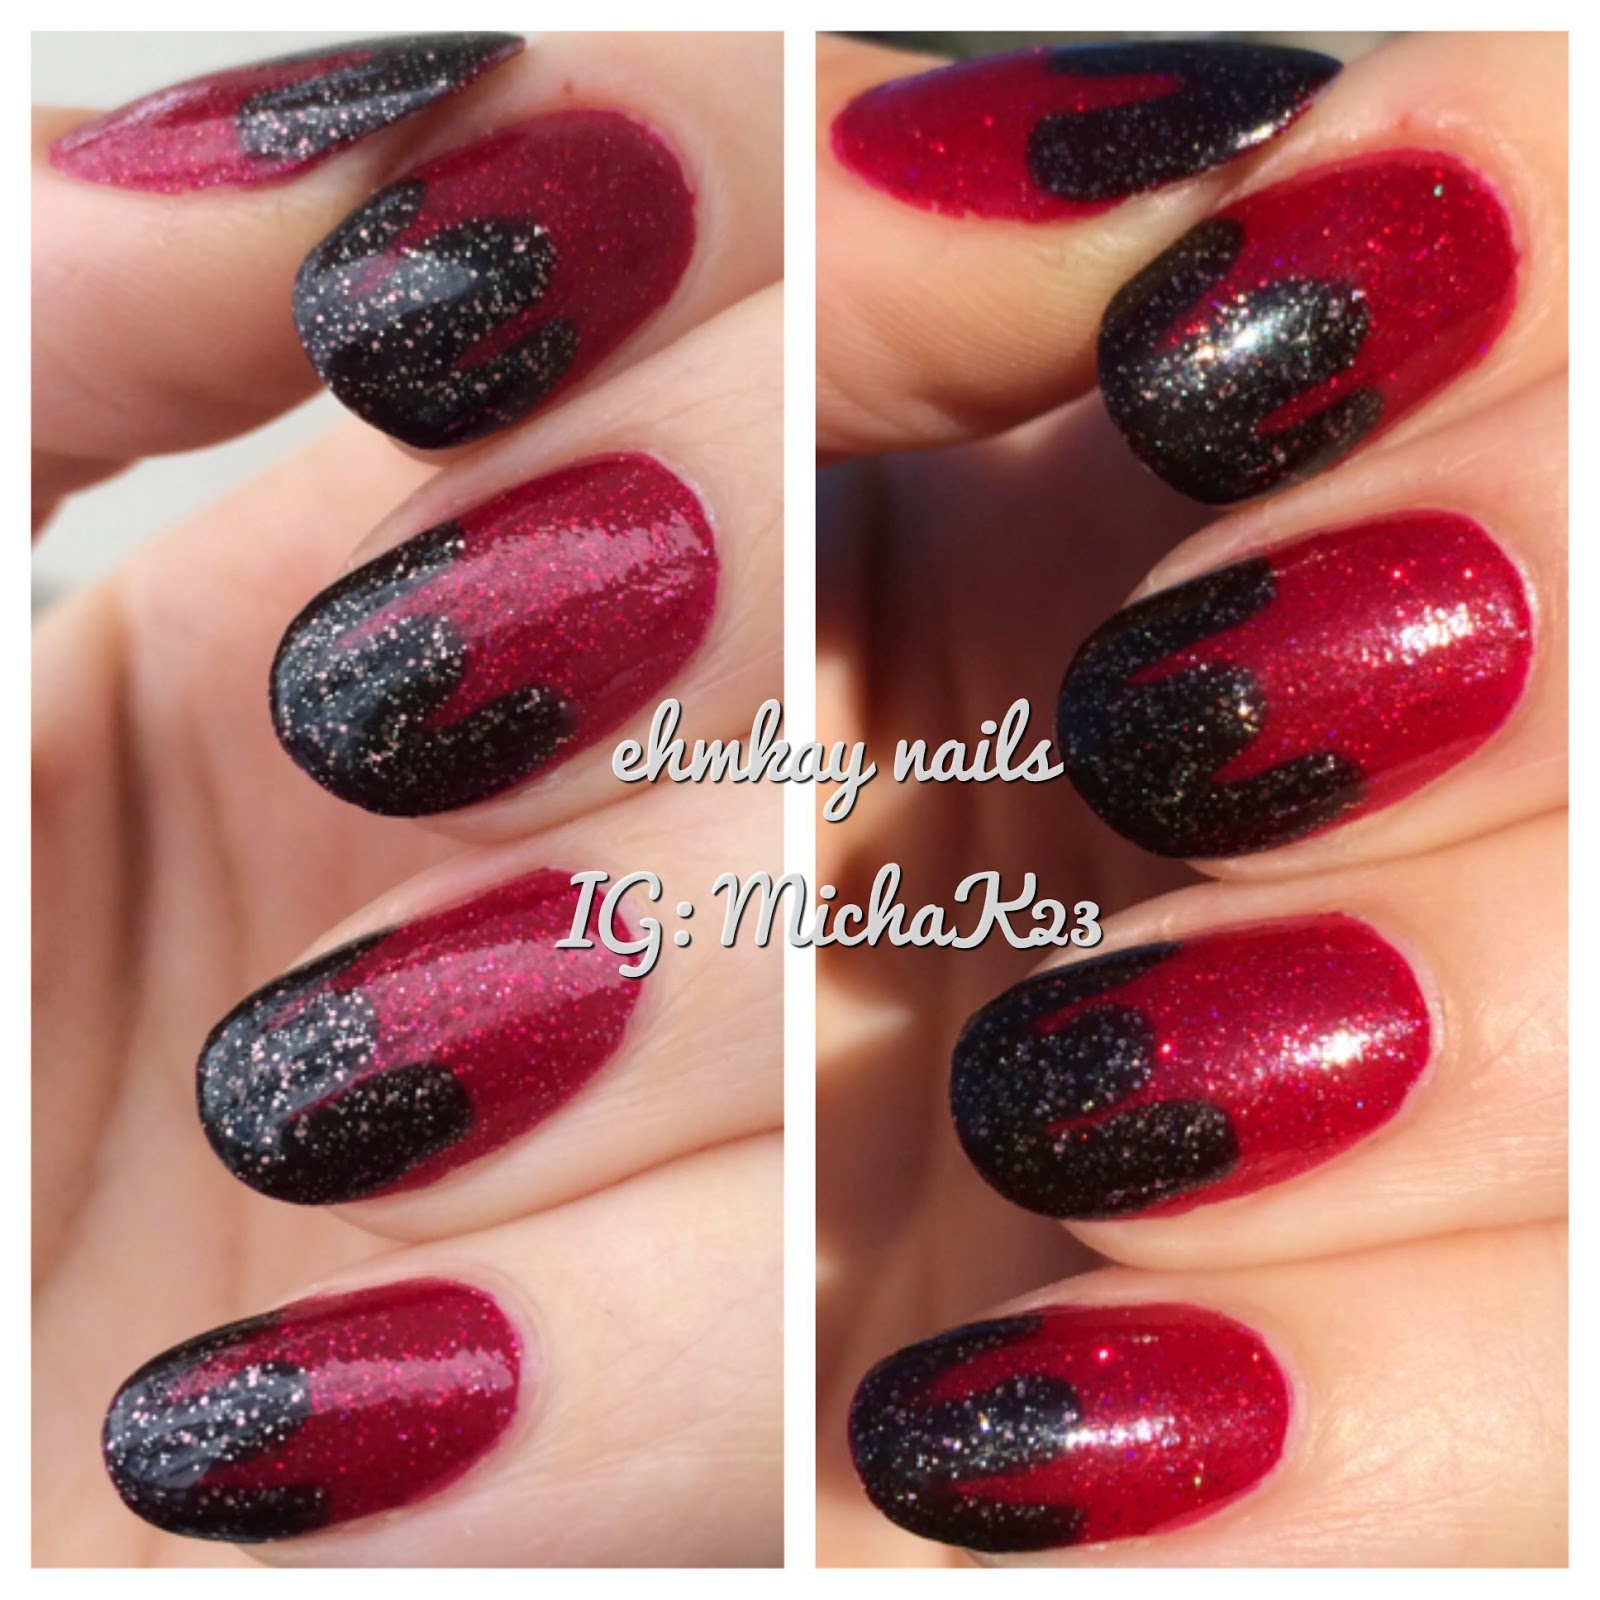 ehmkay nails: Chocolate Dipped Strawberries Nail Art with Azature ...